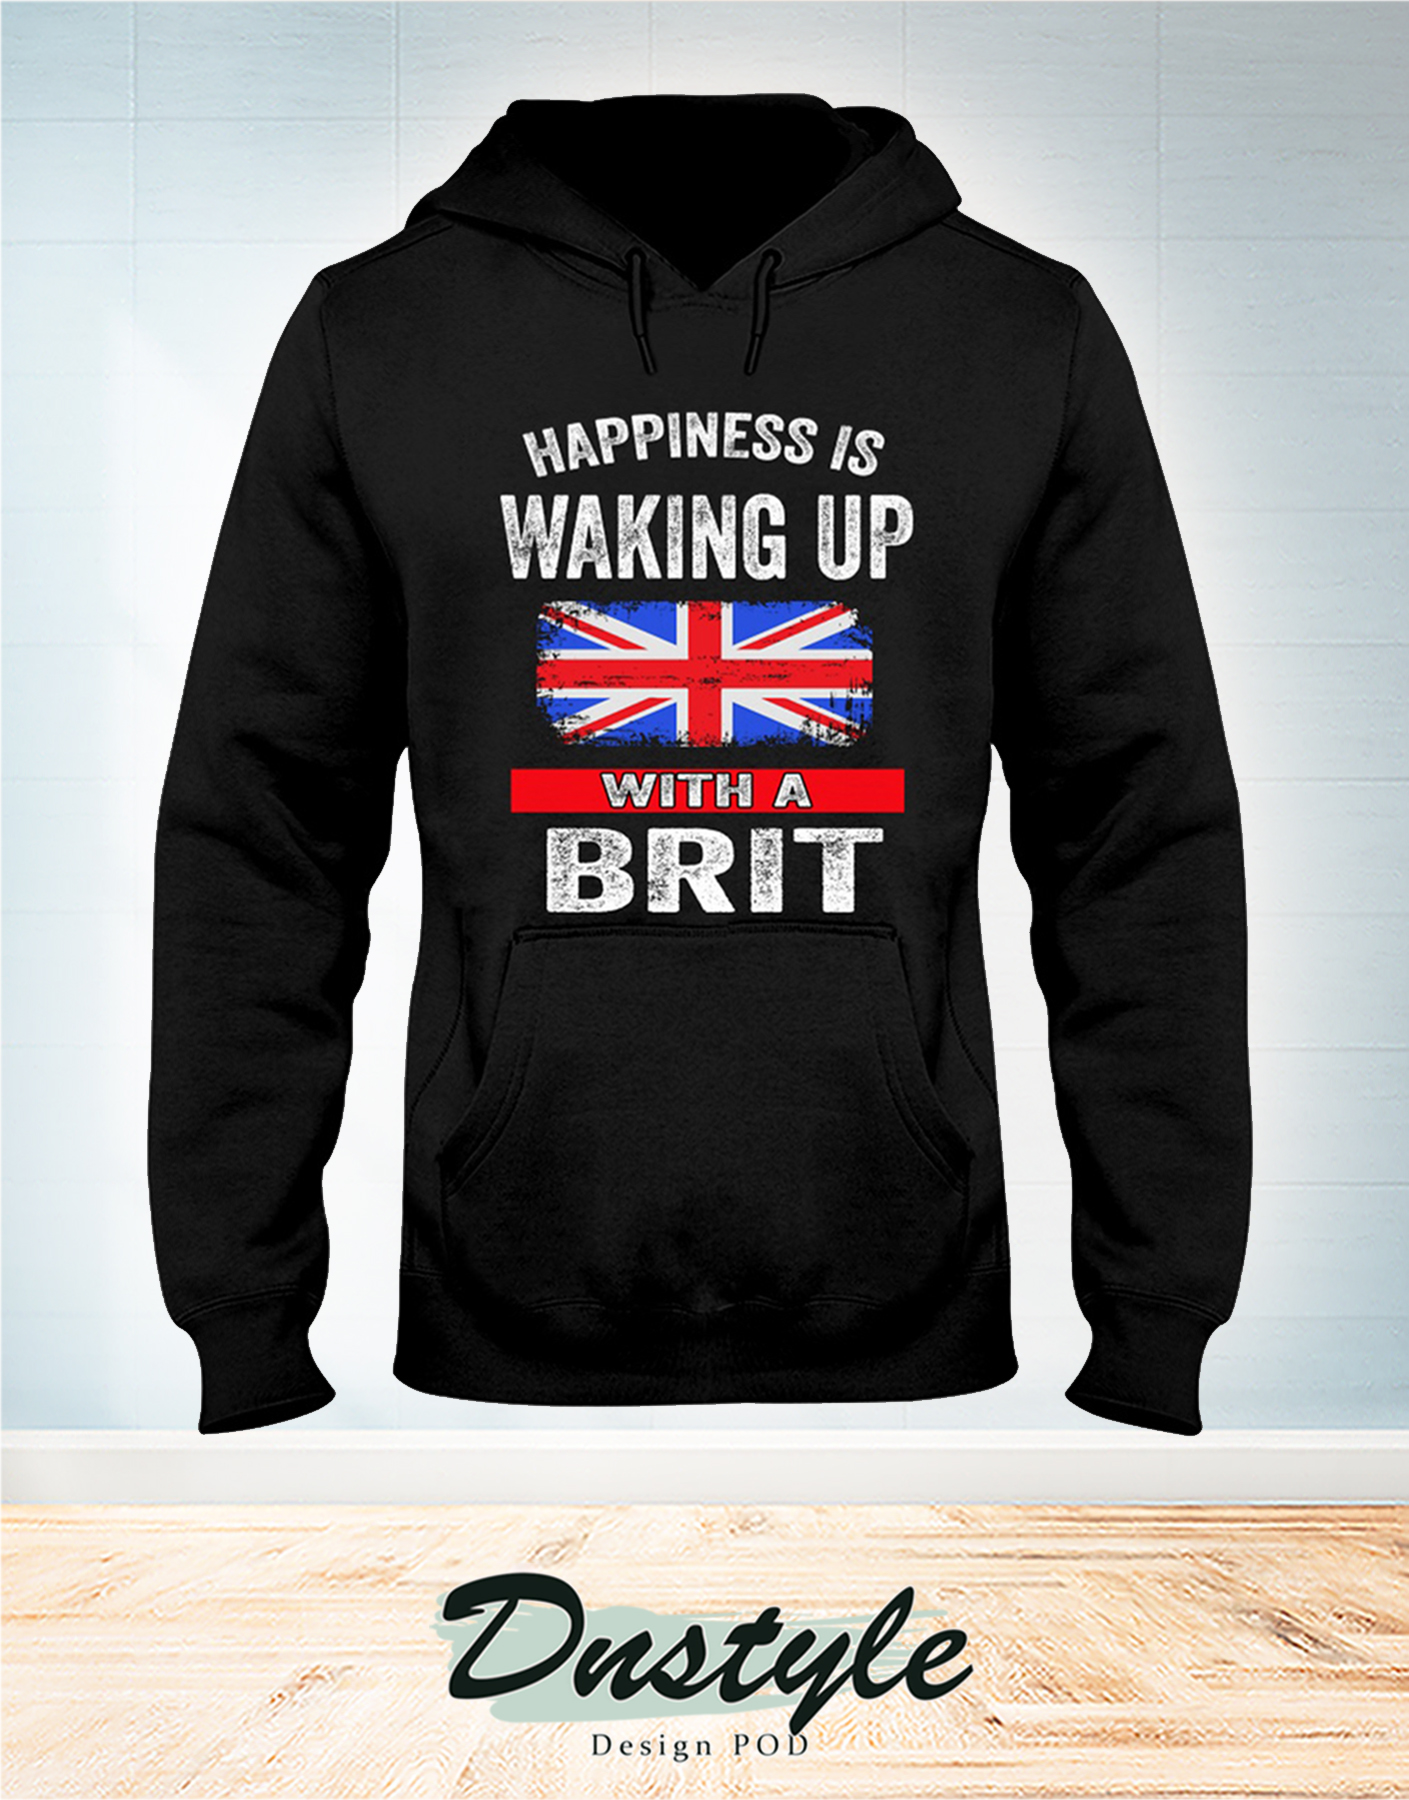 Happiness is waking up with a Brit hoodie